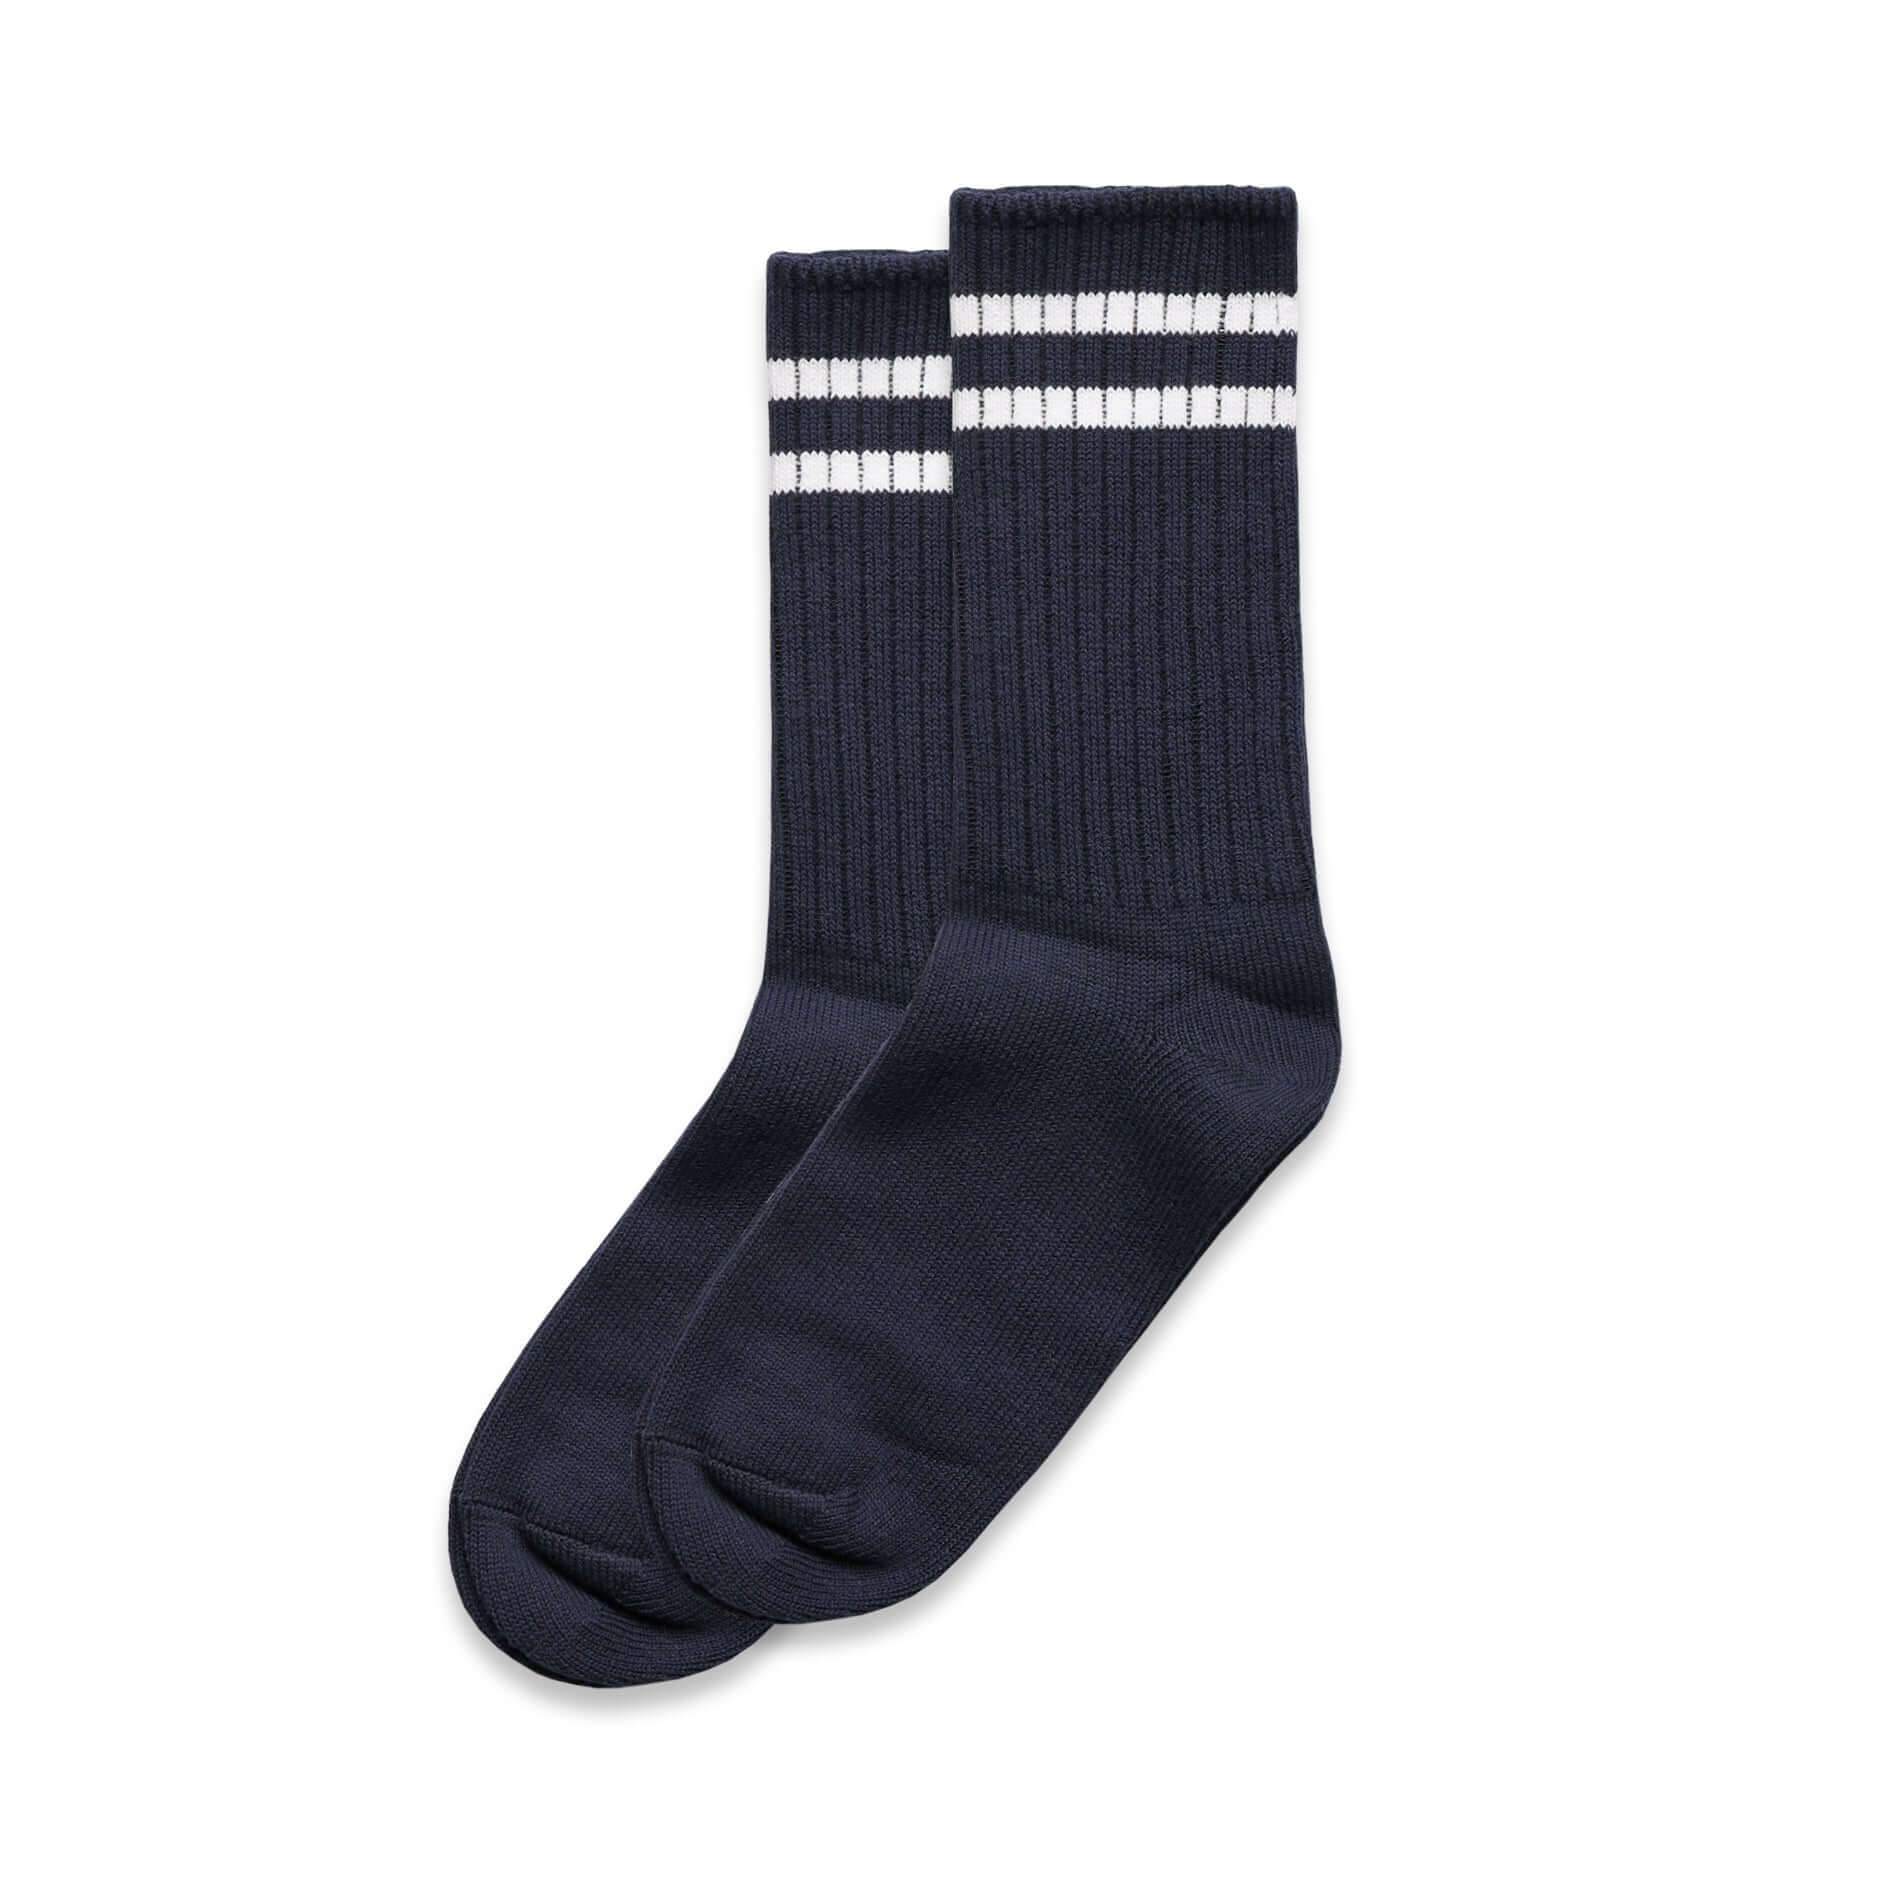 AS Colour TUBE SOCKS - Navy (2 PK)